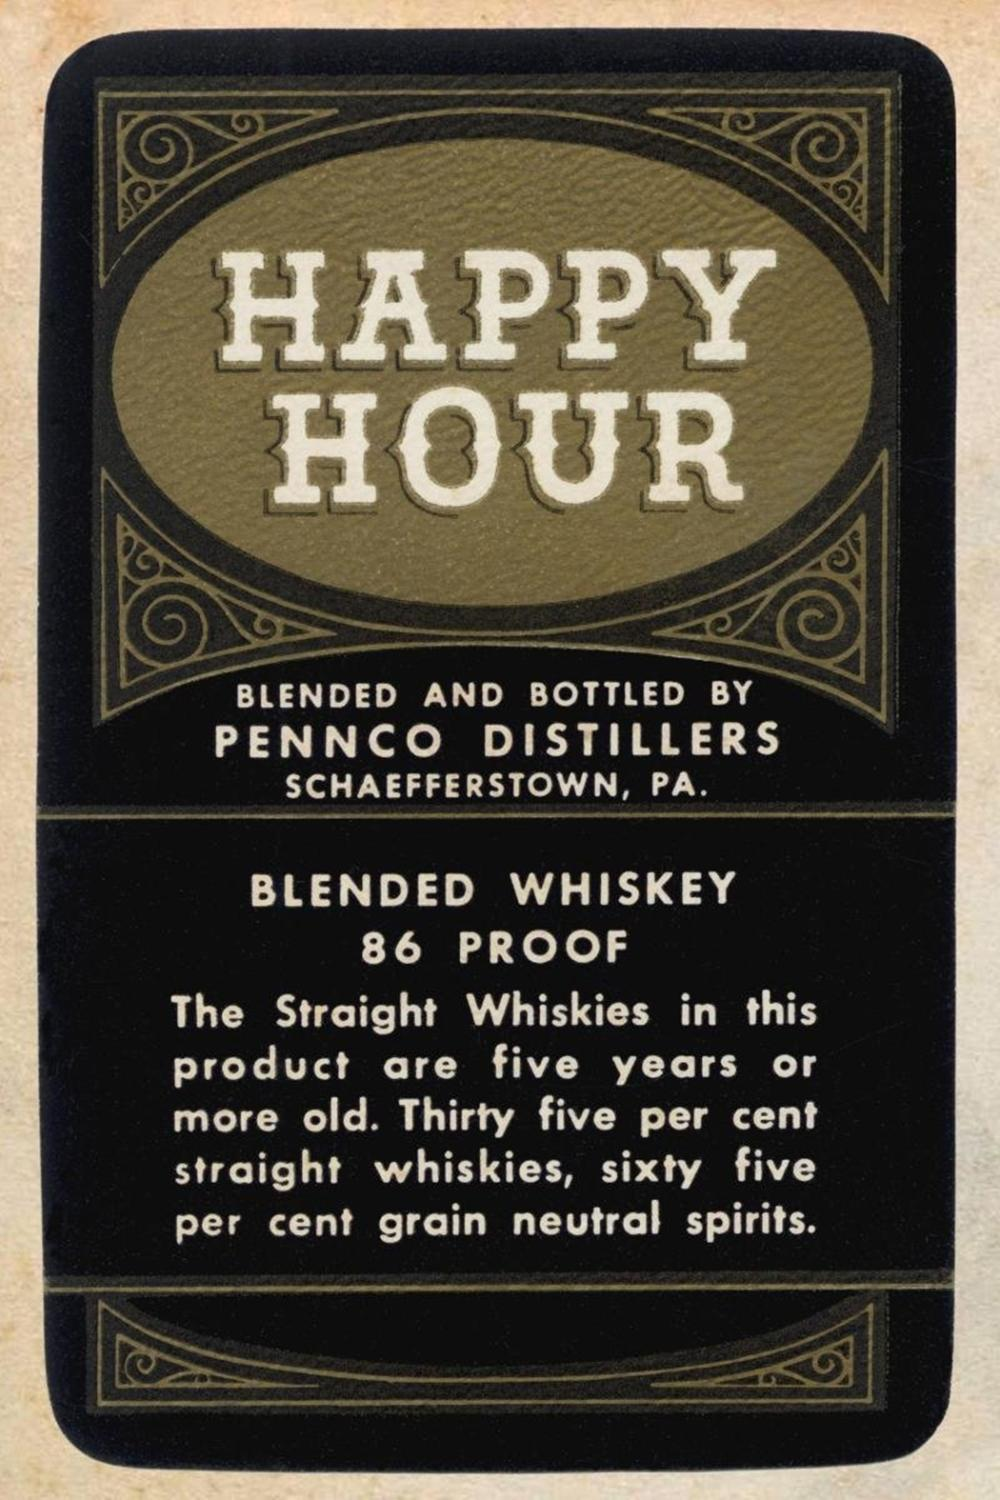 VINTAGE BOOZE LABELS HAPPY HOUR BLENDED WHISKEY